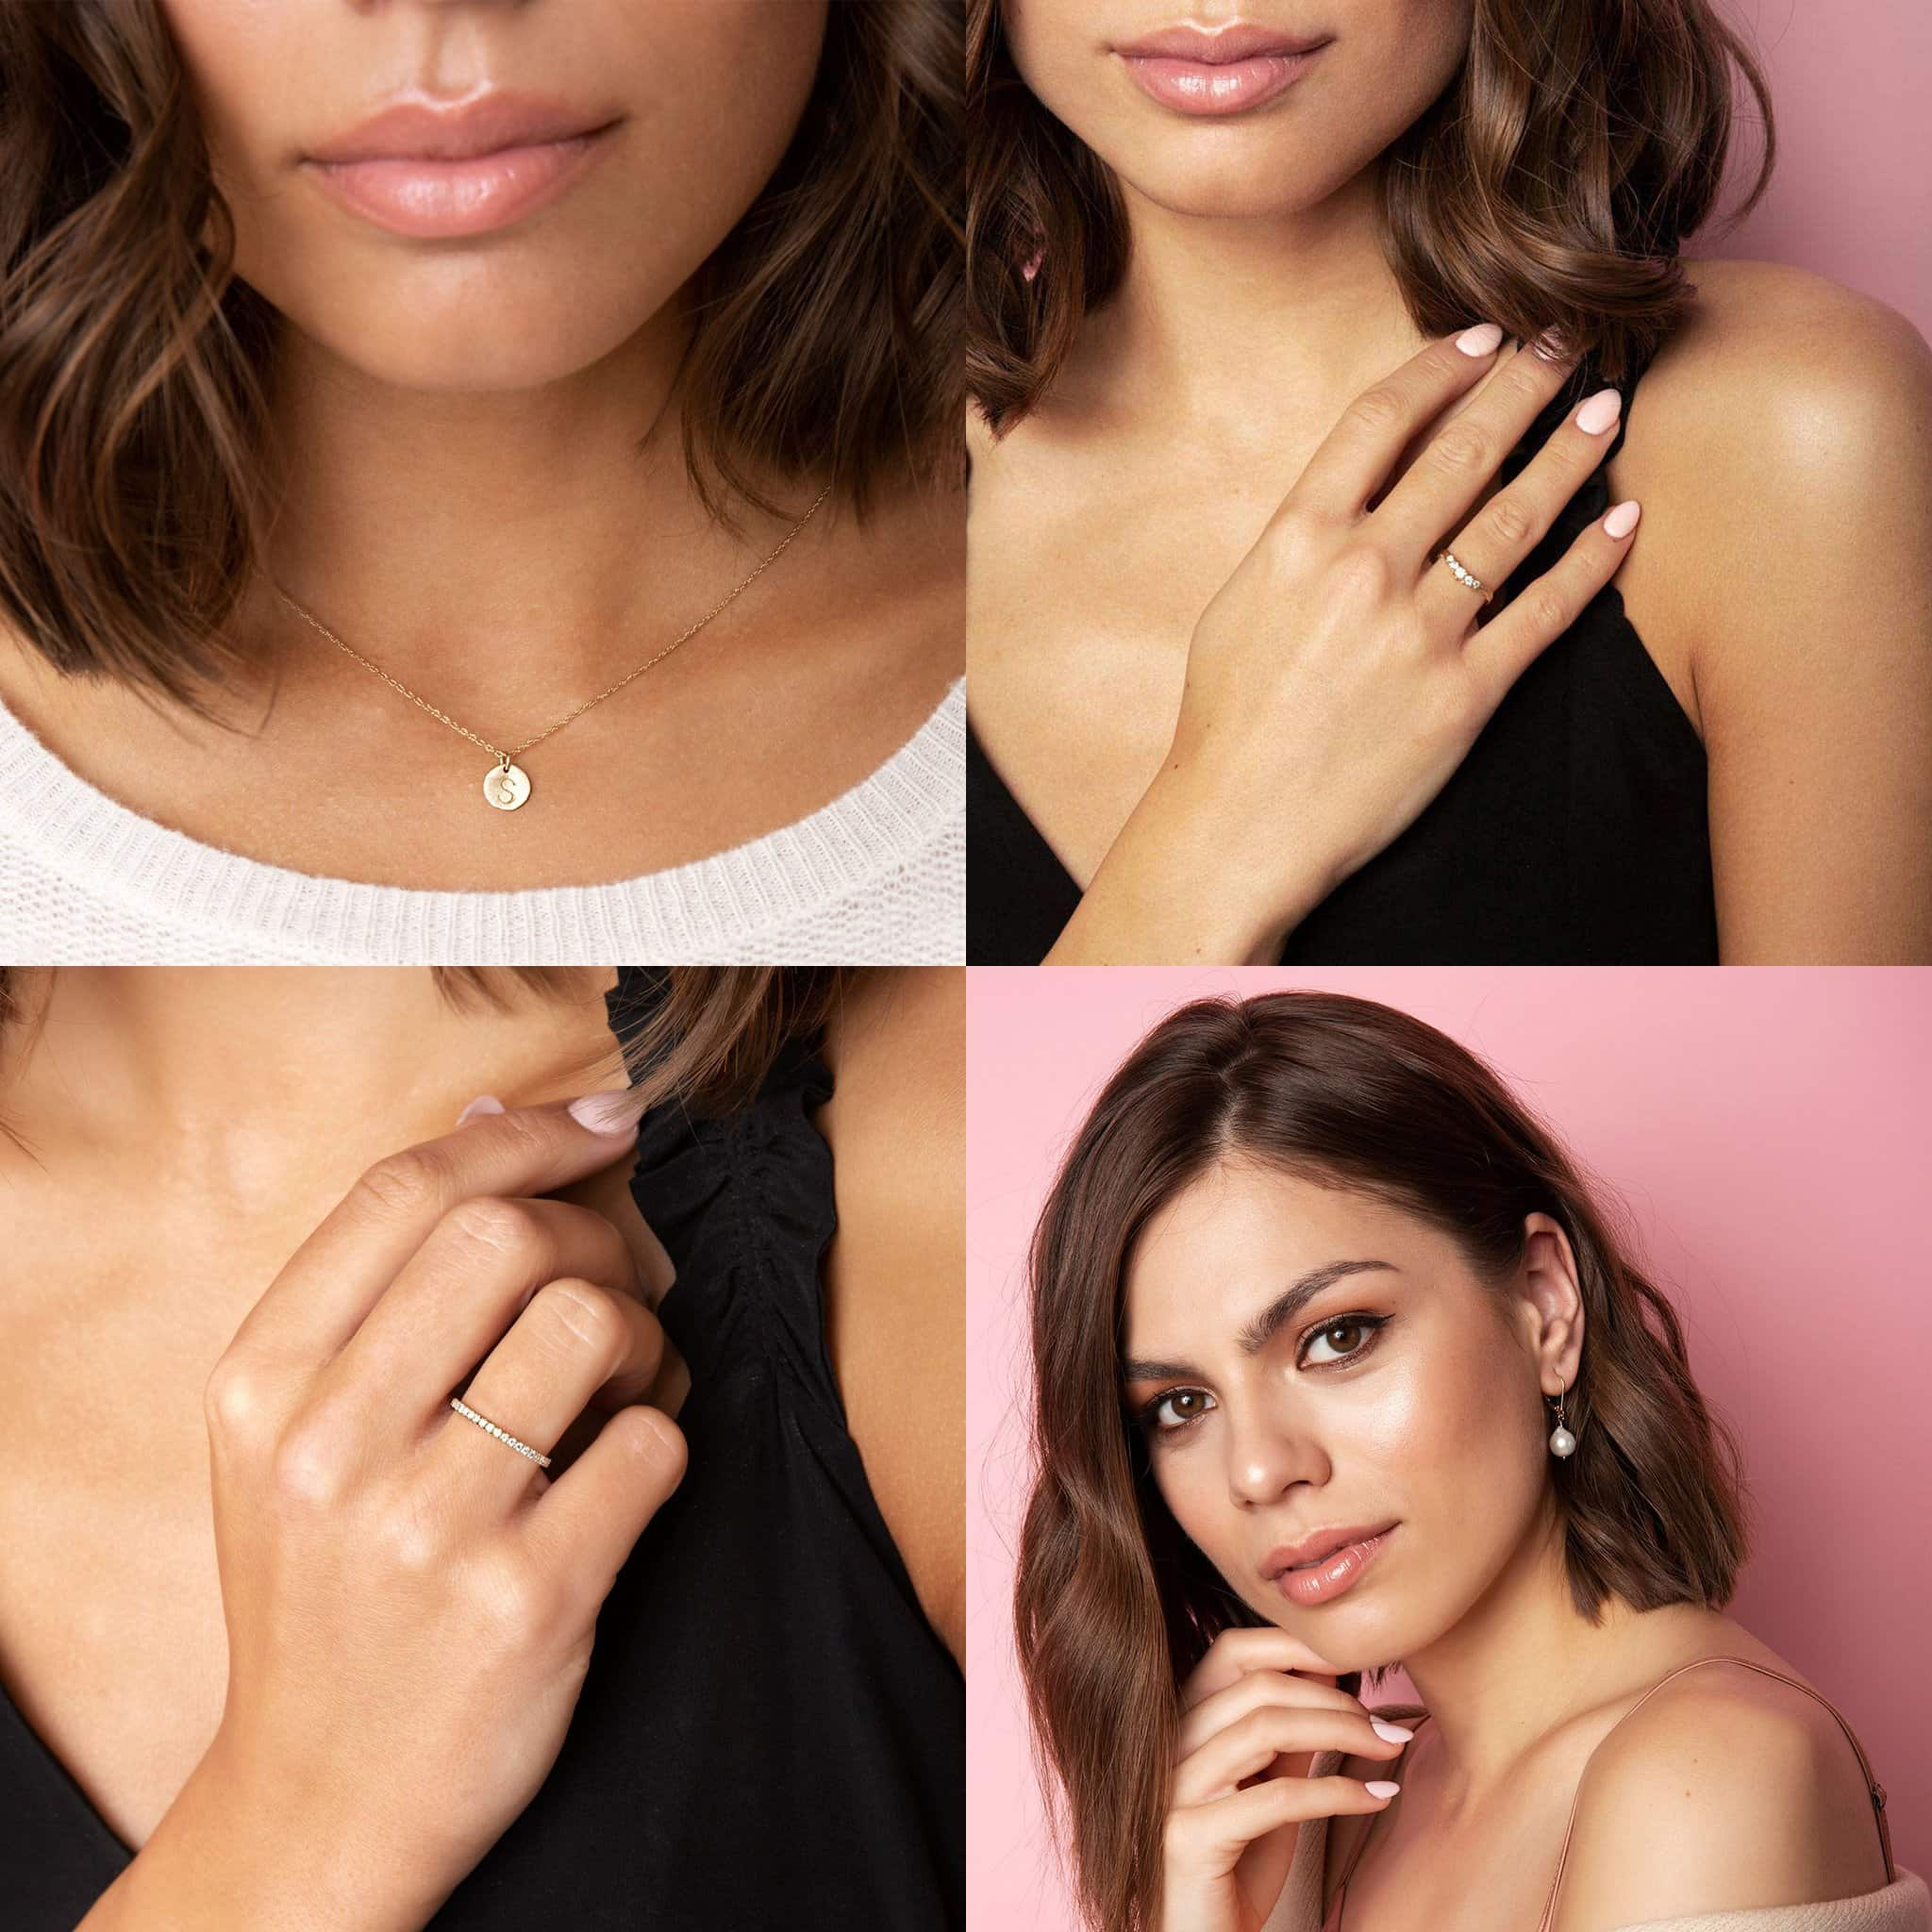 Chupi 14K Gold Initial Letter Midi Disc necklace, $418; 14K Gold Twig Band Crown of Love Diamond ring, $2,020; Chupi 14K Polished Gold Half Eternity Diamond ring, $1,302; Chupi 14K Gold Teardrop Pearl earrings, $442